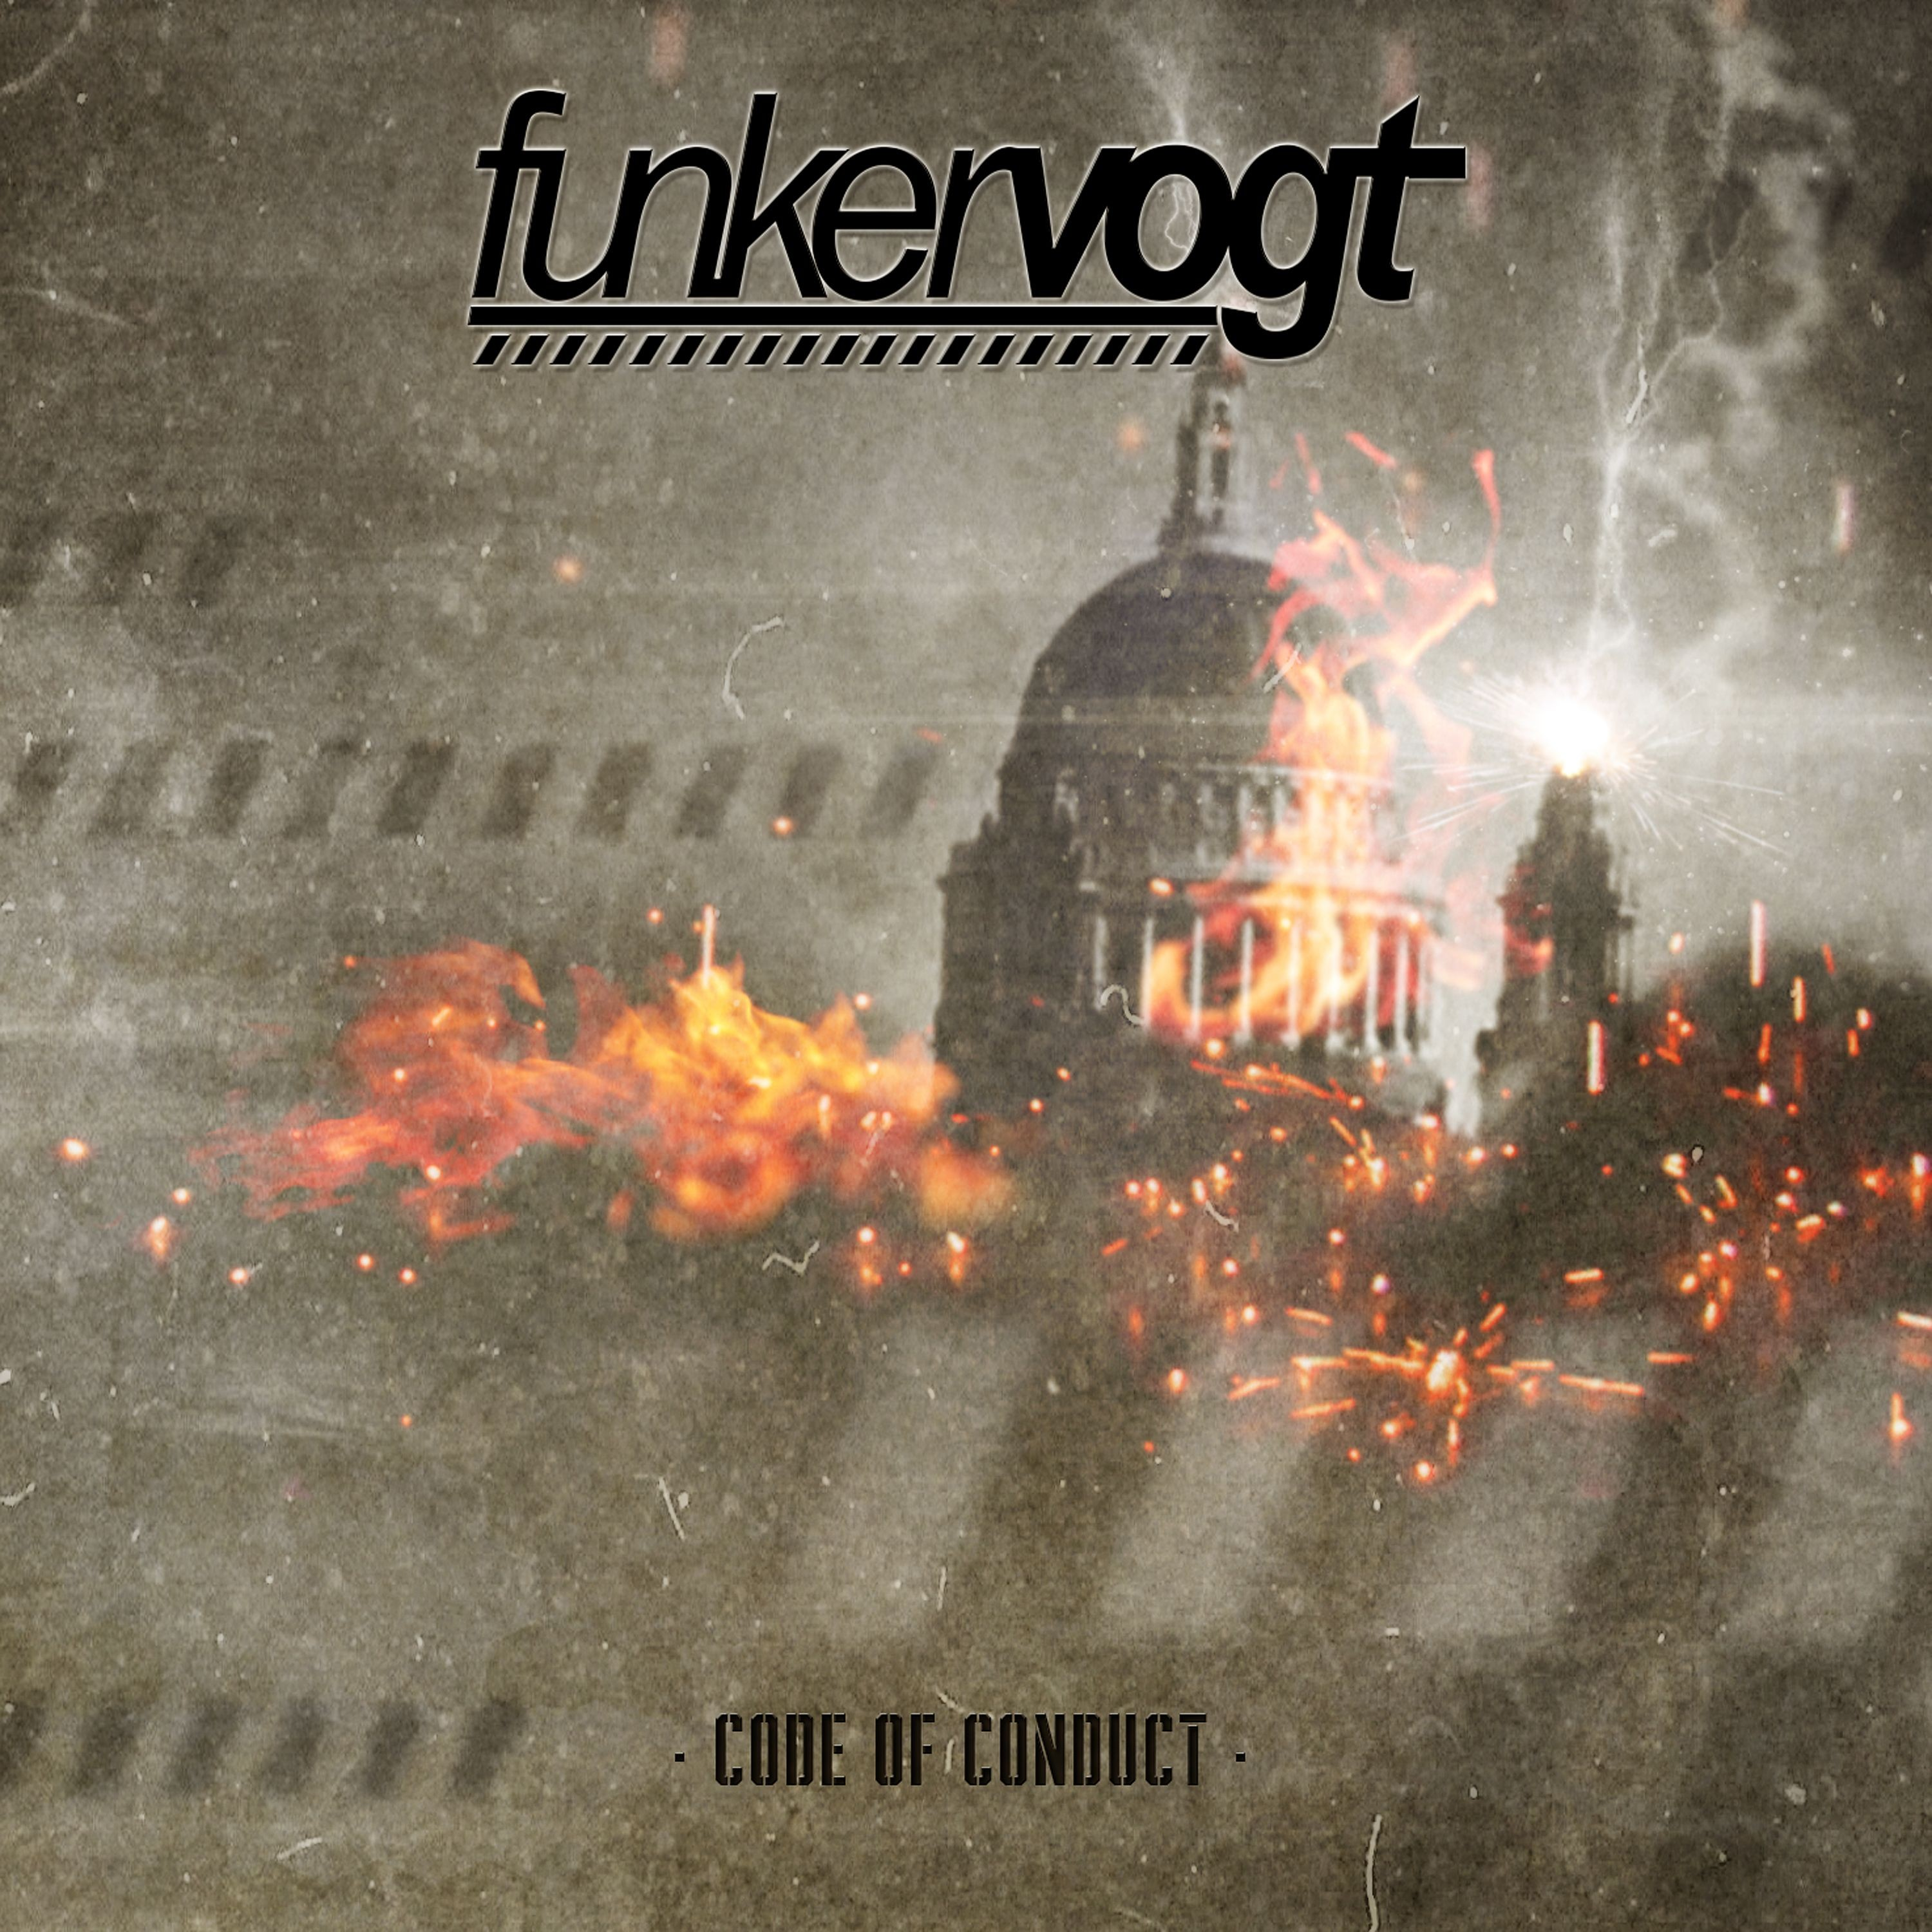 Funker Vogt - Code of Conduct (Limited Edition) - CD